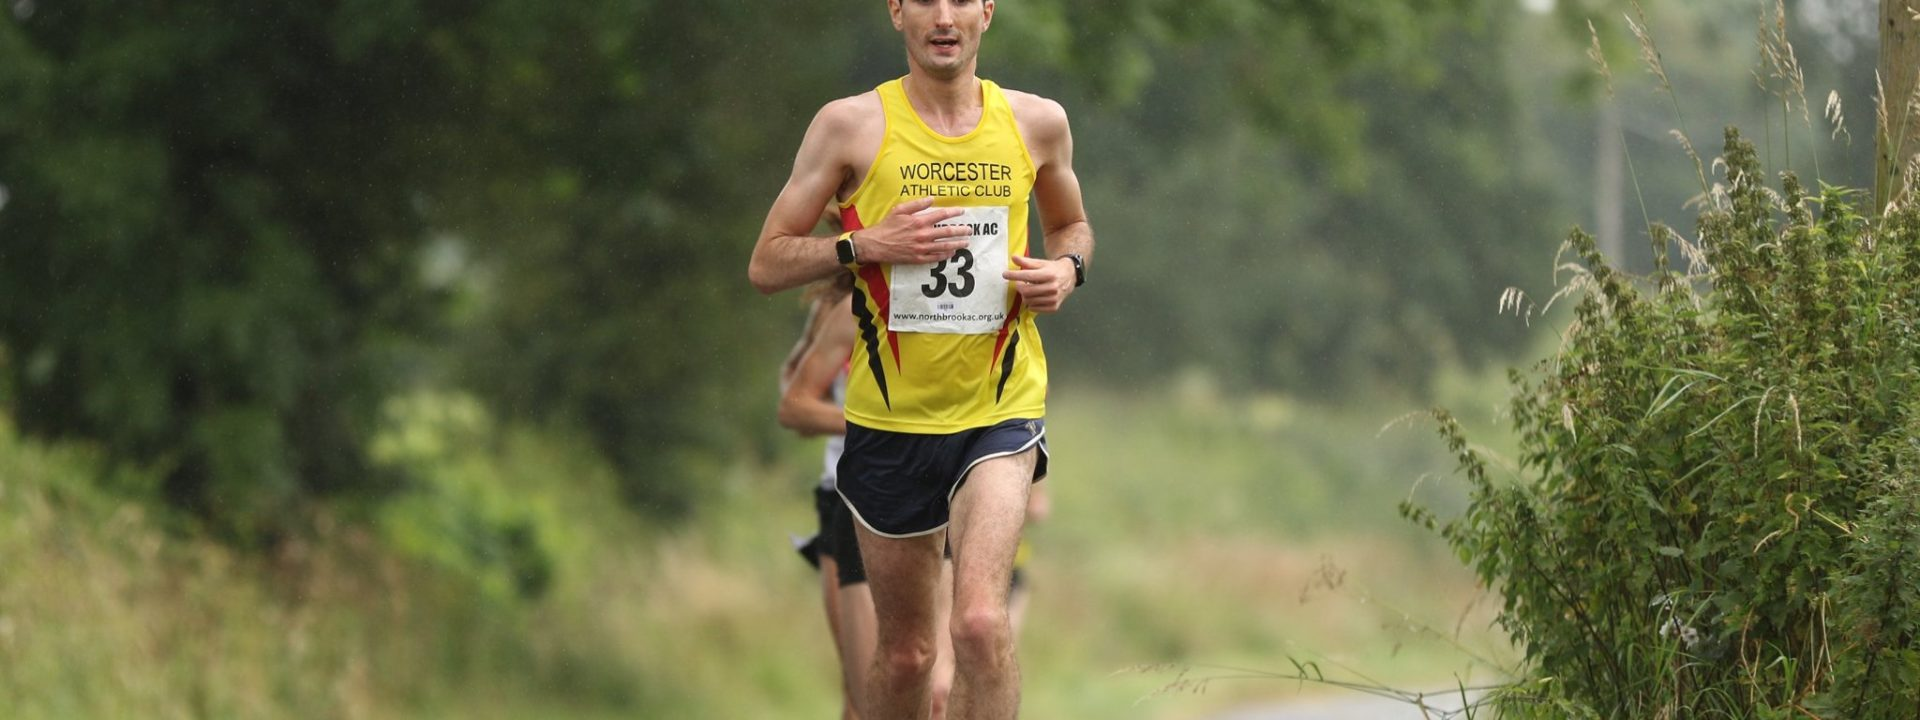 Coventry Northbrook 10K